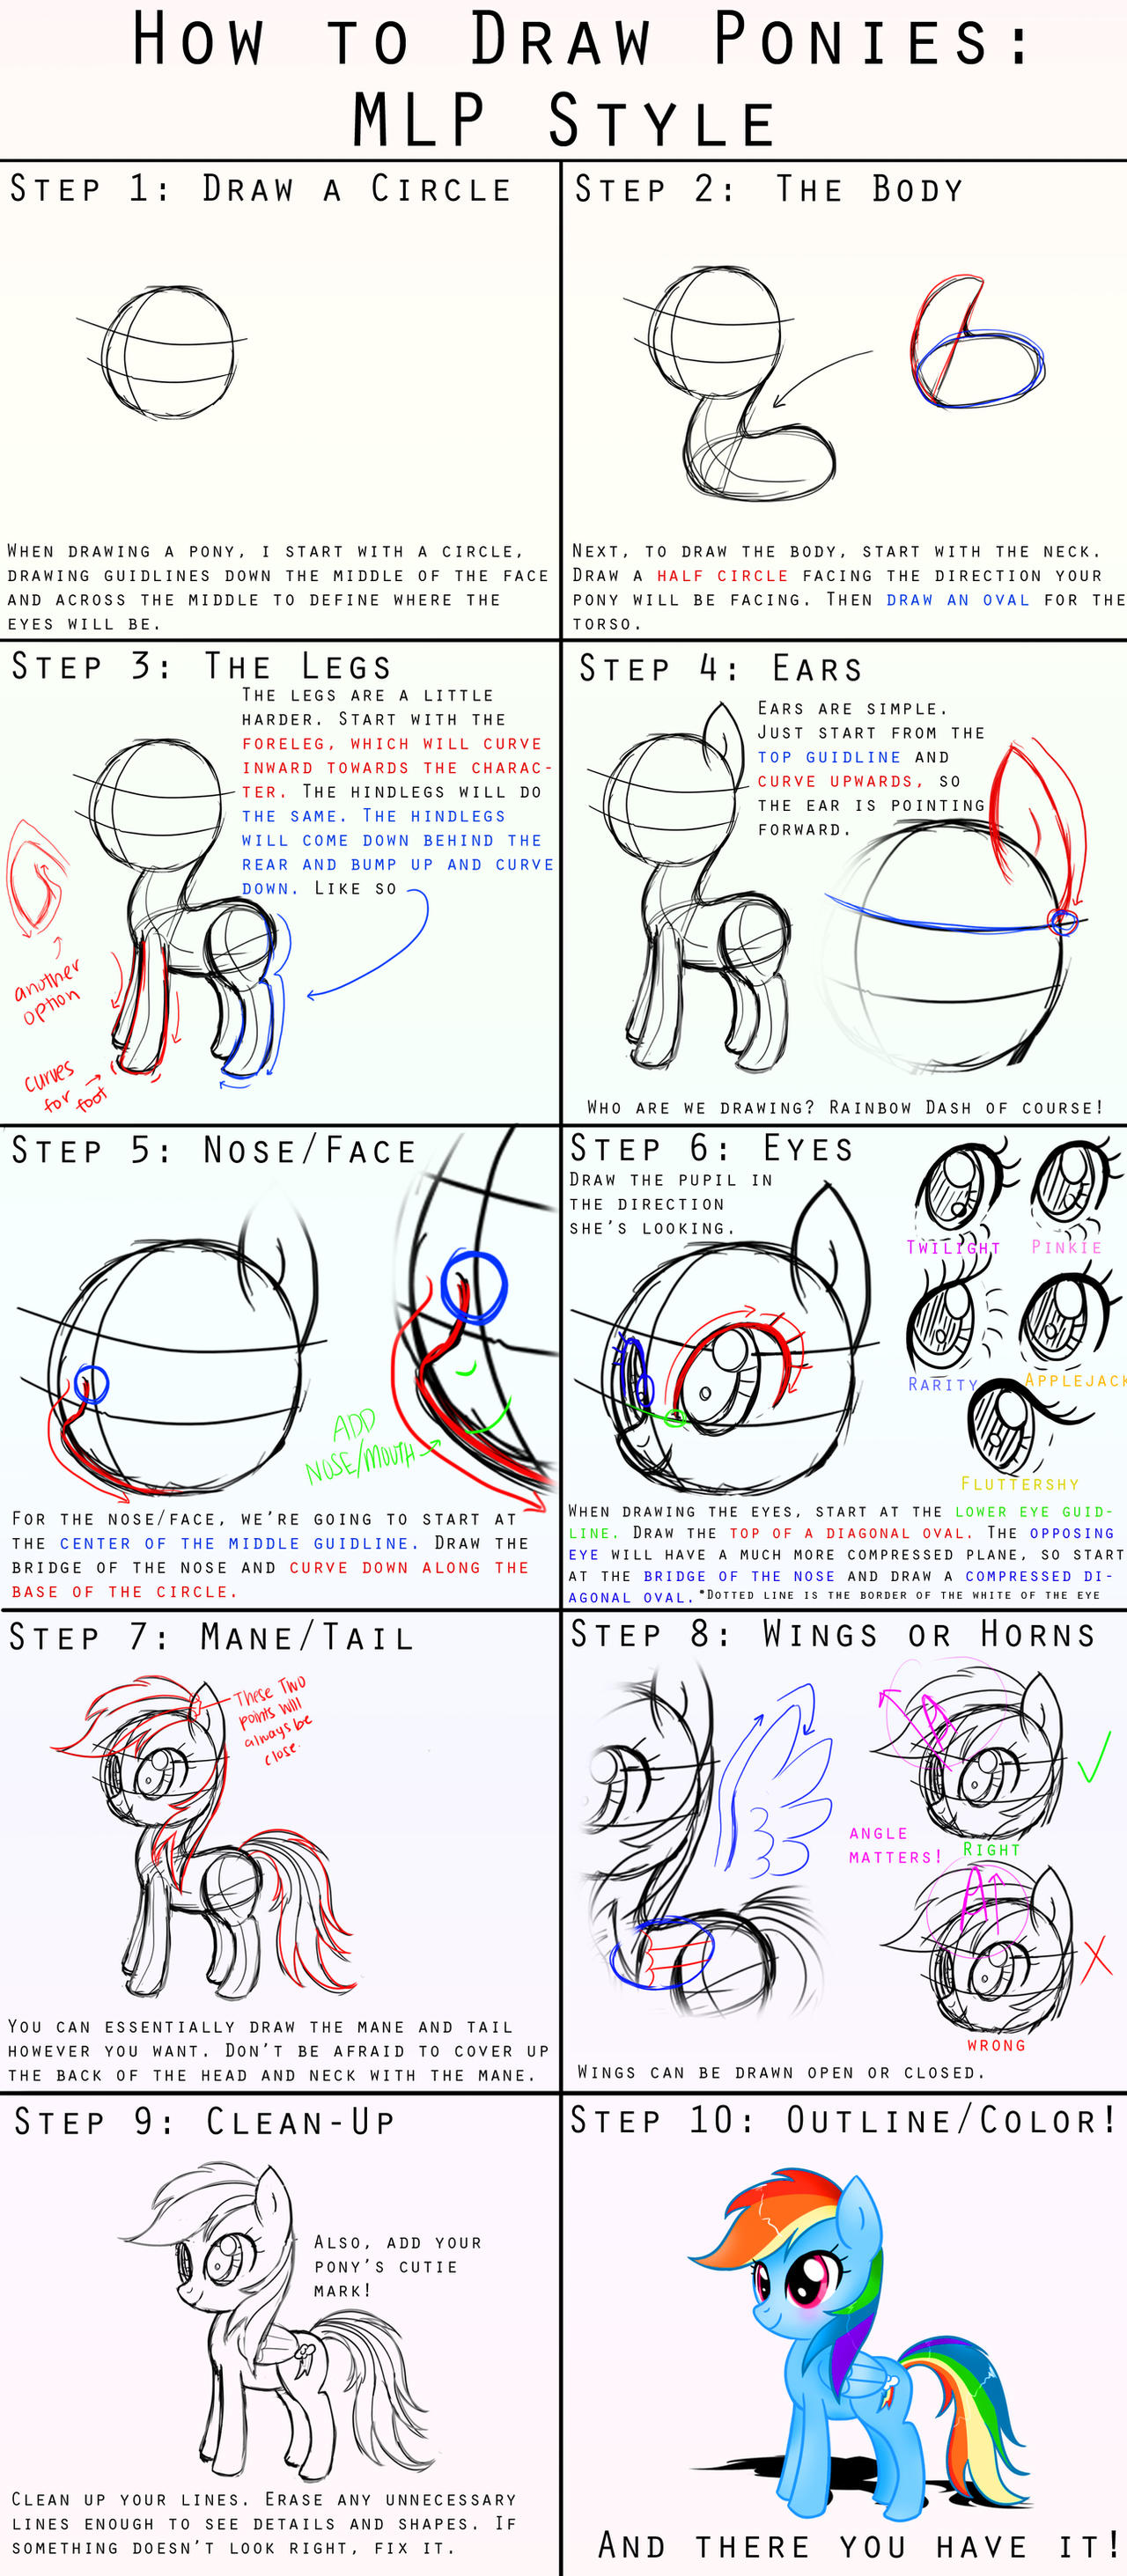 Uncategorized How To Draw Ponies how to draw ponies mlp style by steffy beff on deviantart beff